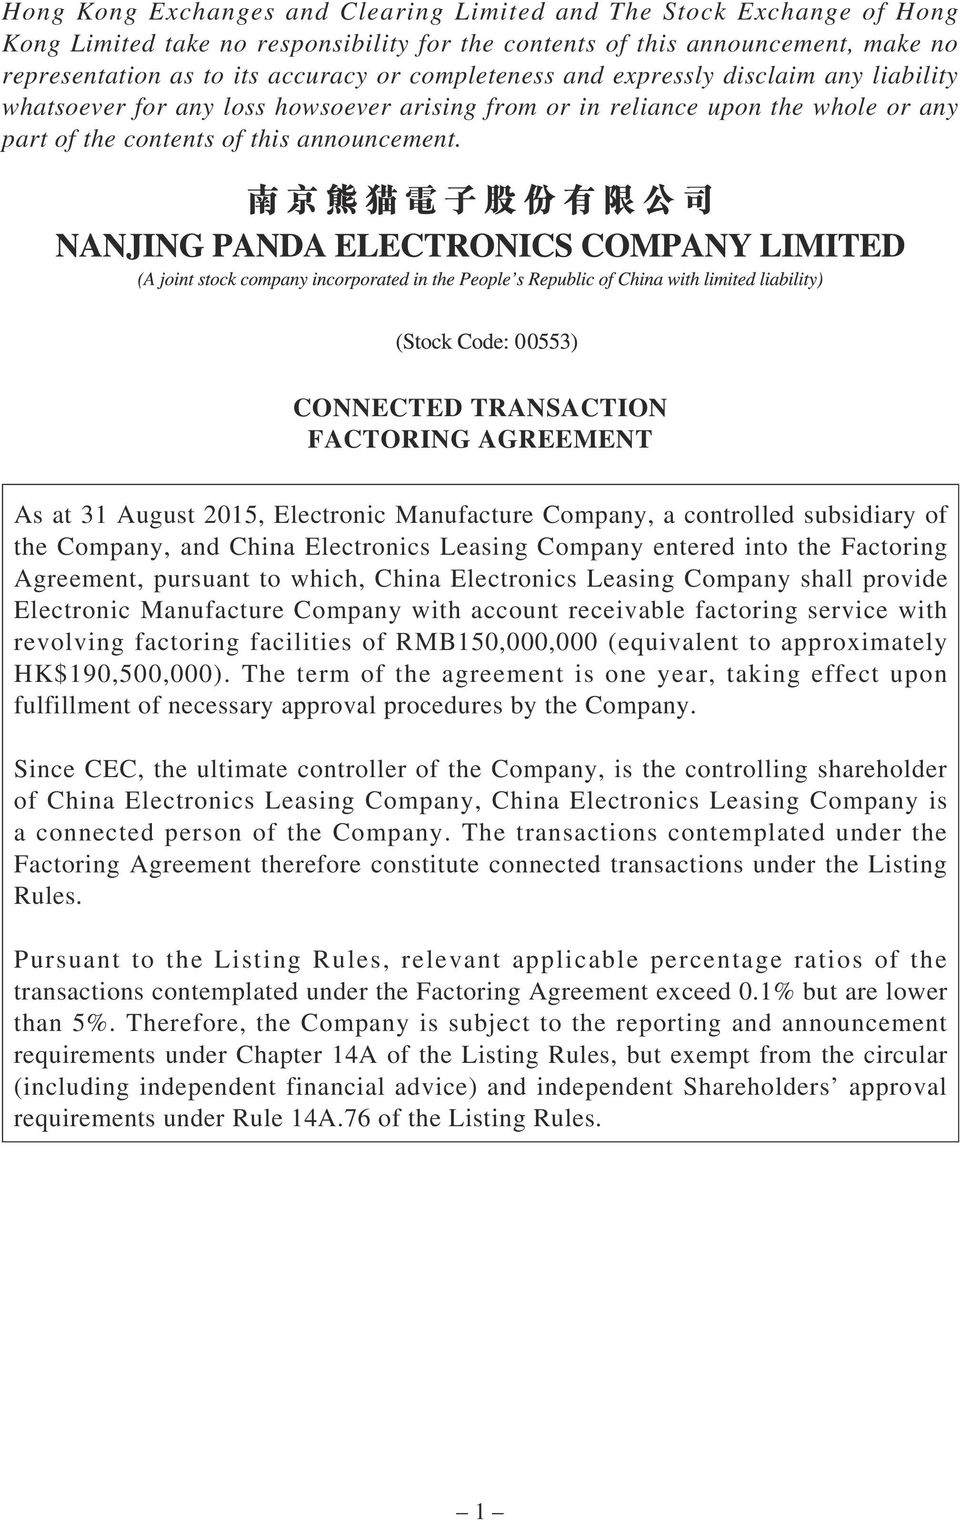 CONNECTED TRANSACTION FACTORING AGREEMENT As at 31 August 2015, Electronic Manufacture Company, a controlled subsidiary of the Company, and China Electronics Leasing Company entered into the